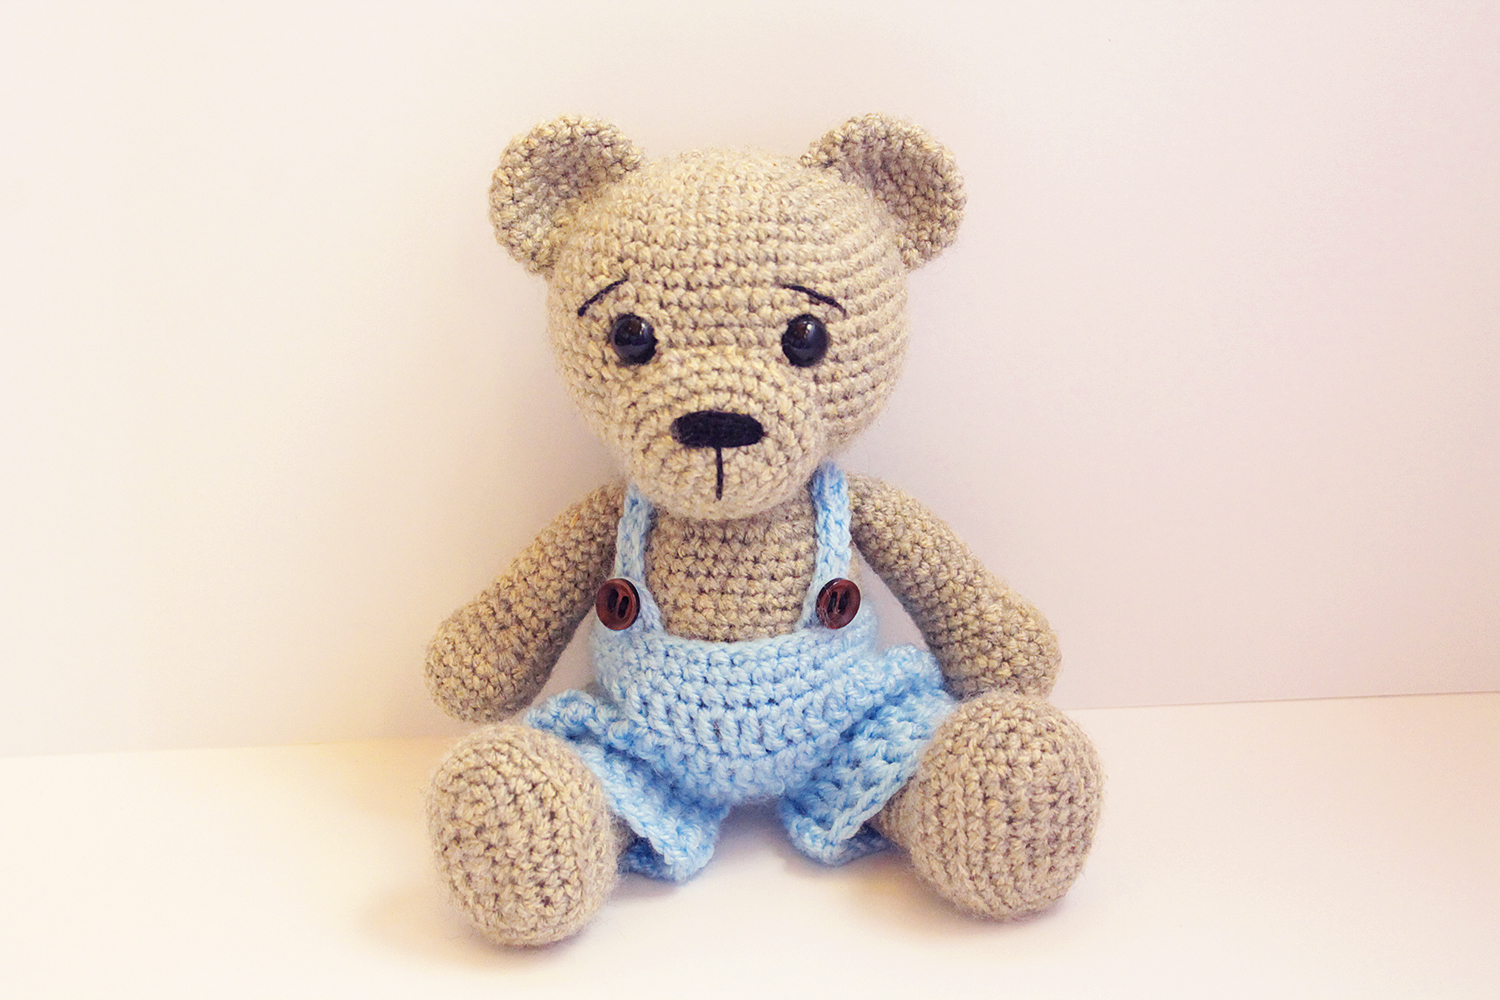 Tiny teddy bear crochet pattern | Amiguroom Toys | 1000x1500